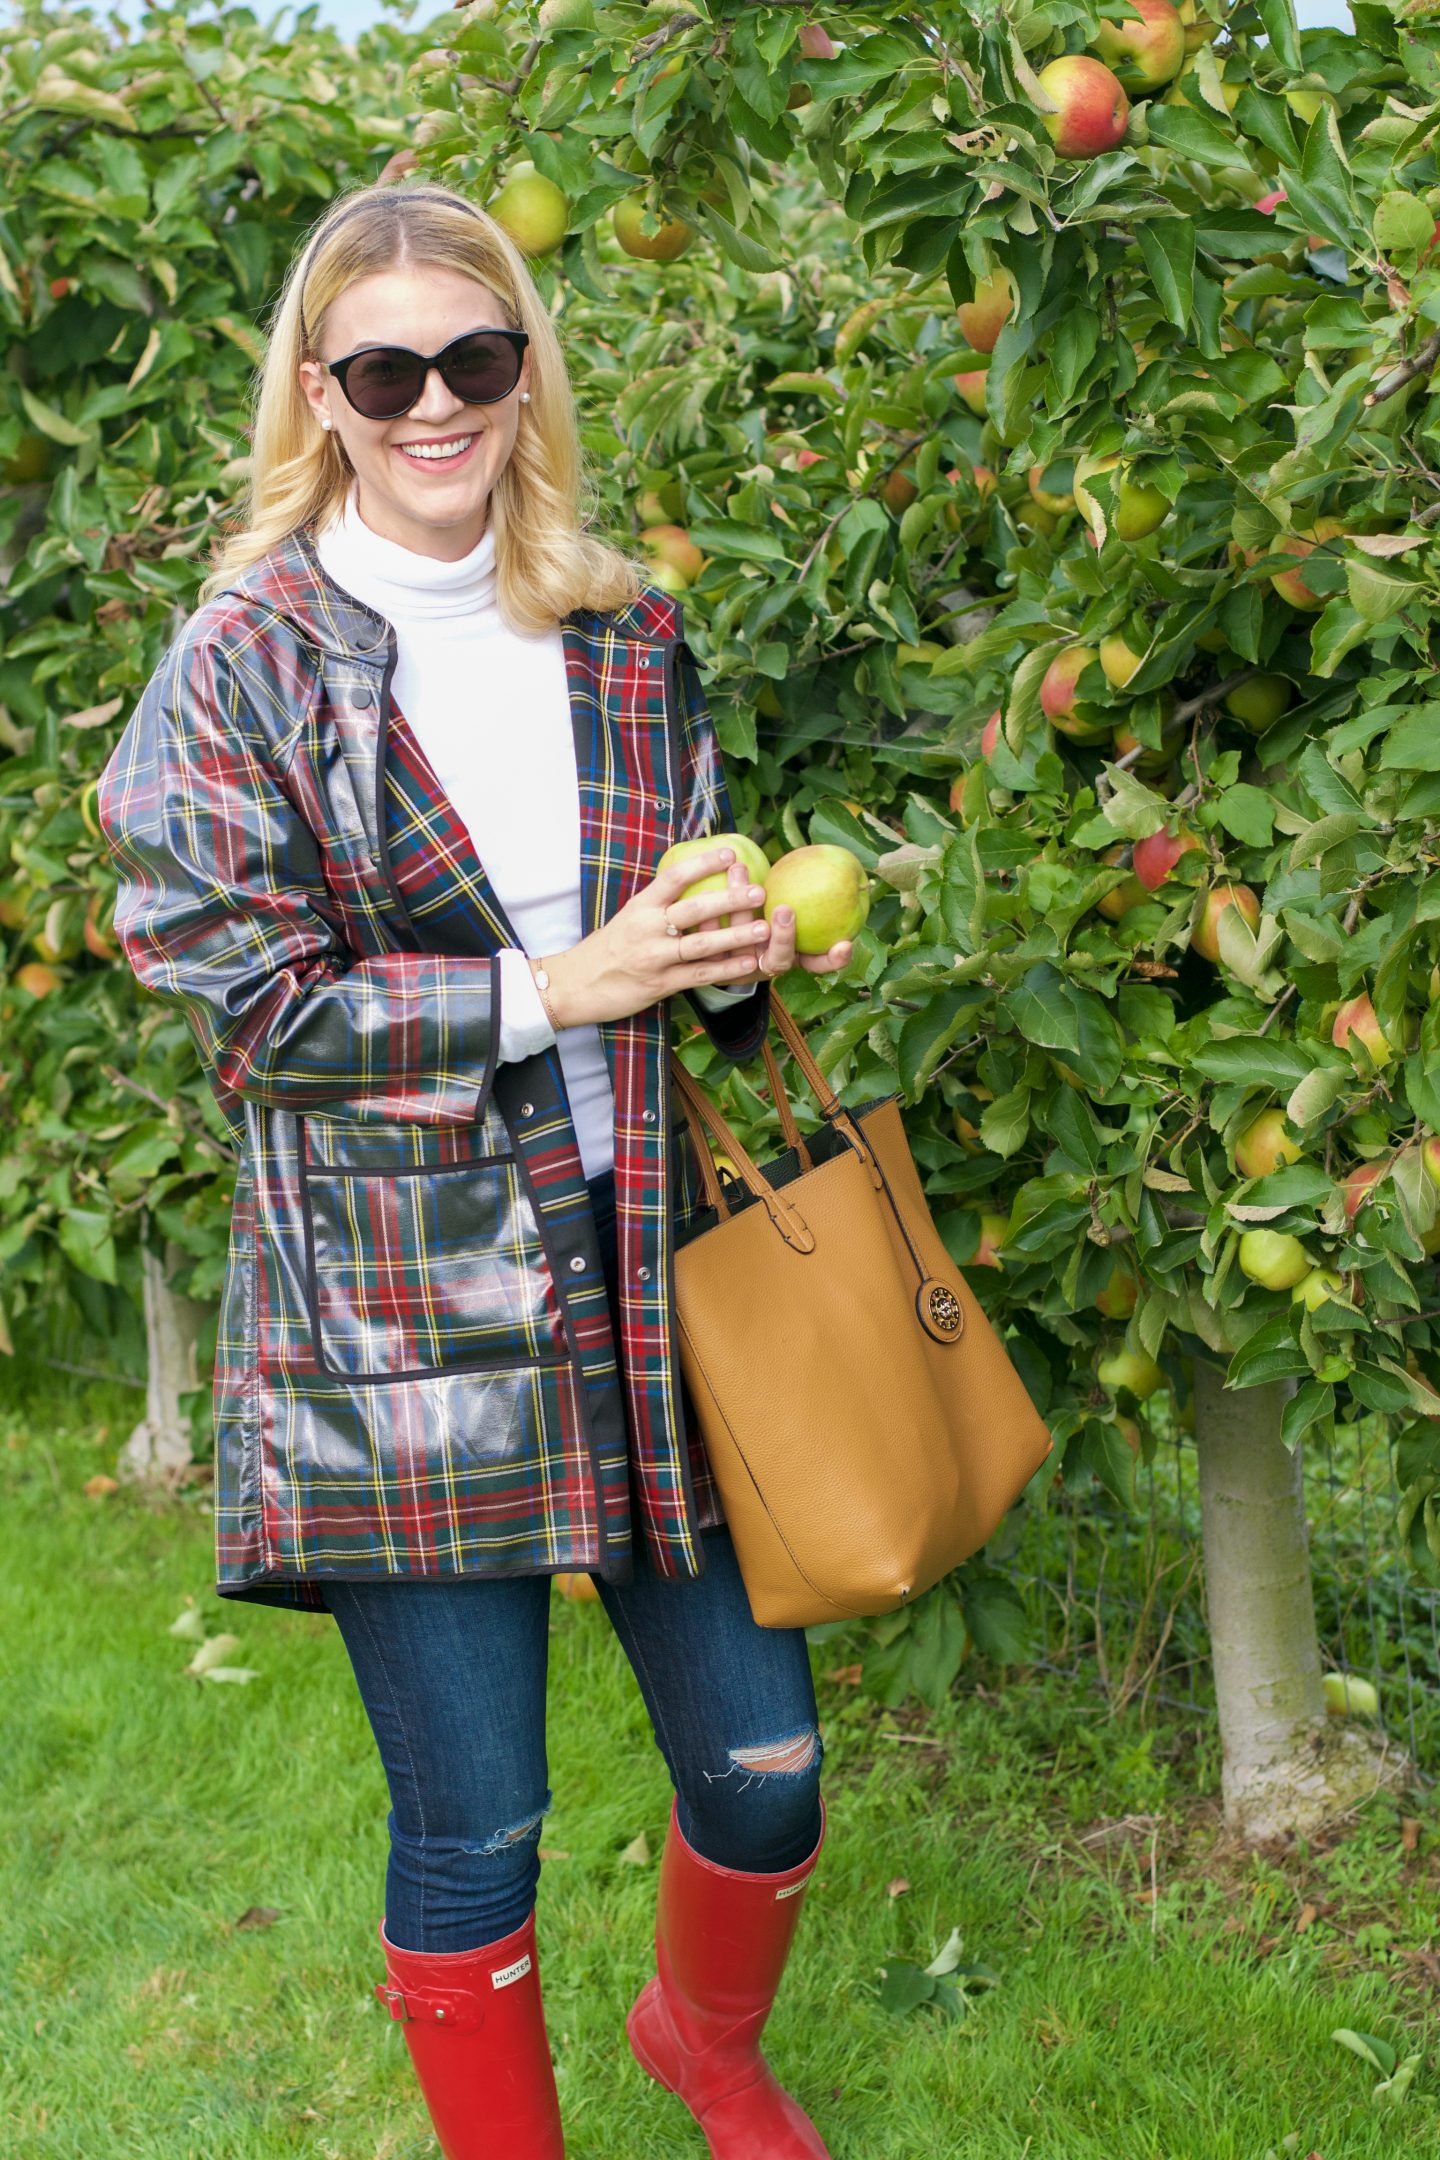 Fall Activities Apple picking | zara plaid raincoat hunter boots | Fall Activities by popular Seattle lifestyle blog, Whit Wanders: image of a woman in a apple orchard and wearing a Zara plaid rubberized rain coat, white turtle neck, jeans, and red Hunter rain boots.